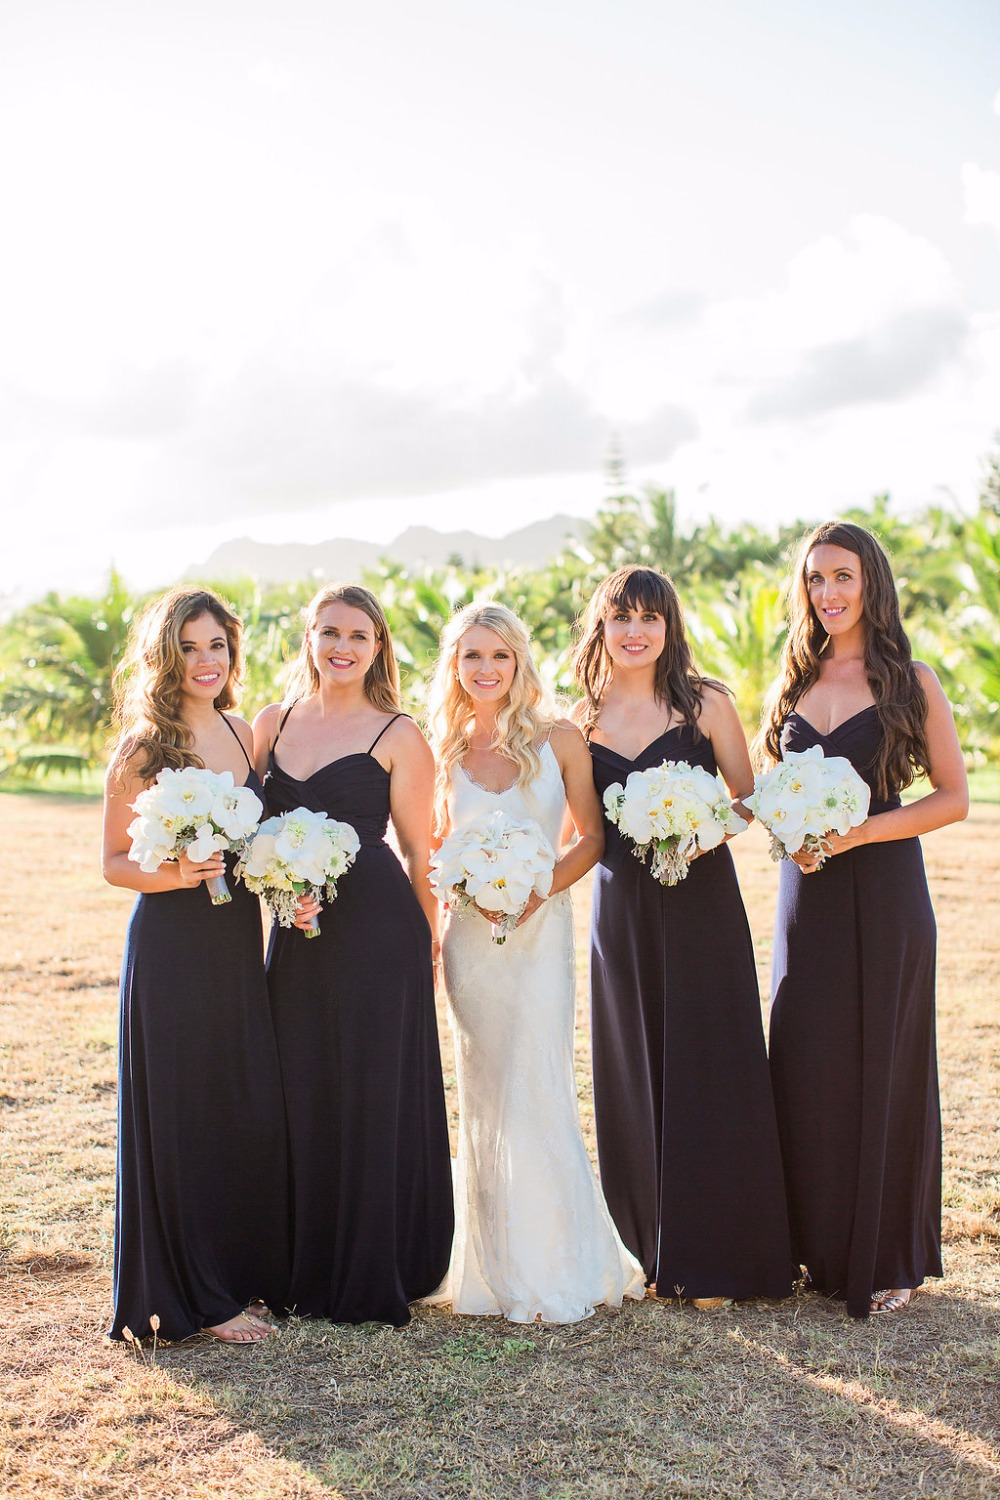 Bridesmaid dresses in black